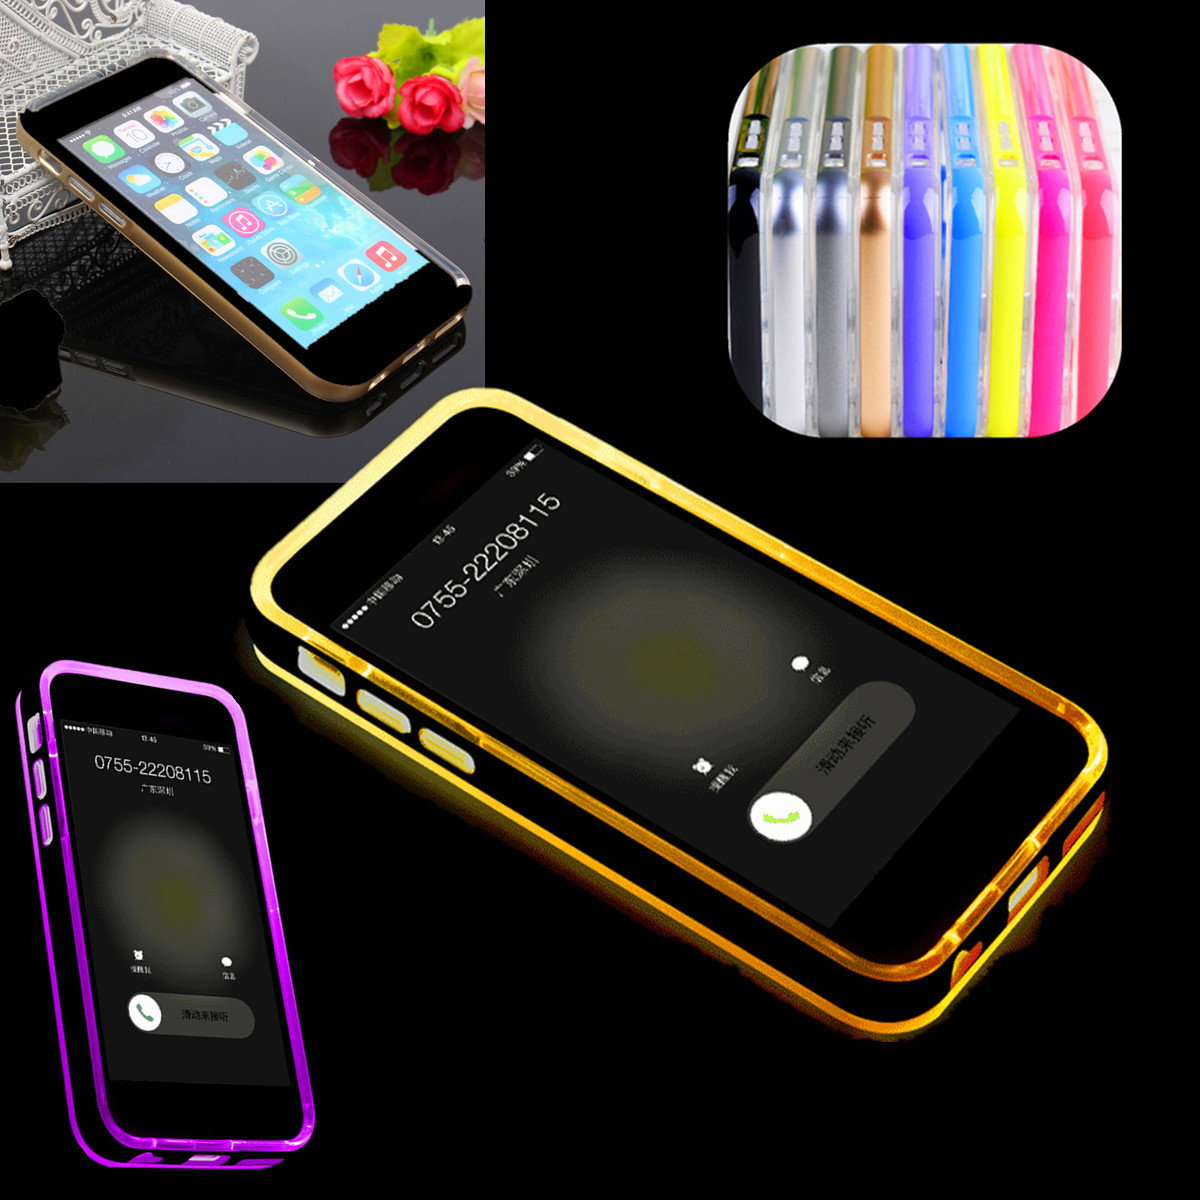 handy rahmen h lle fall cover abdeckung led blinkt flash tpc pc f r iphone 6 4 7 ebay. Black Bedroom Furniture Sets. Home Design Ideas